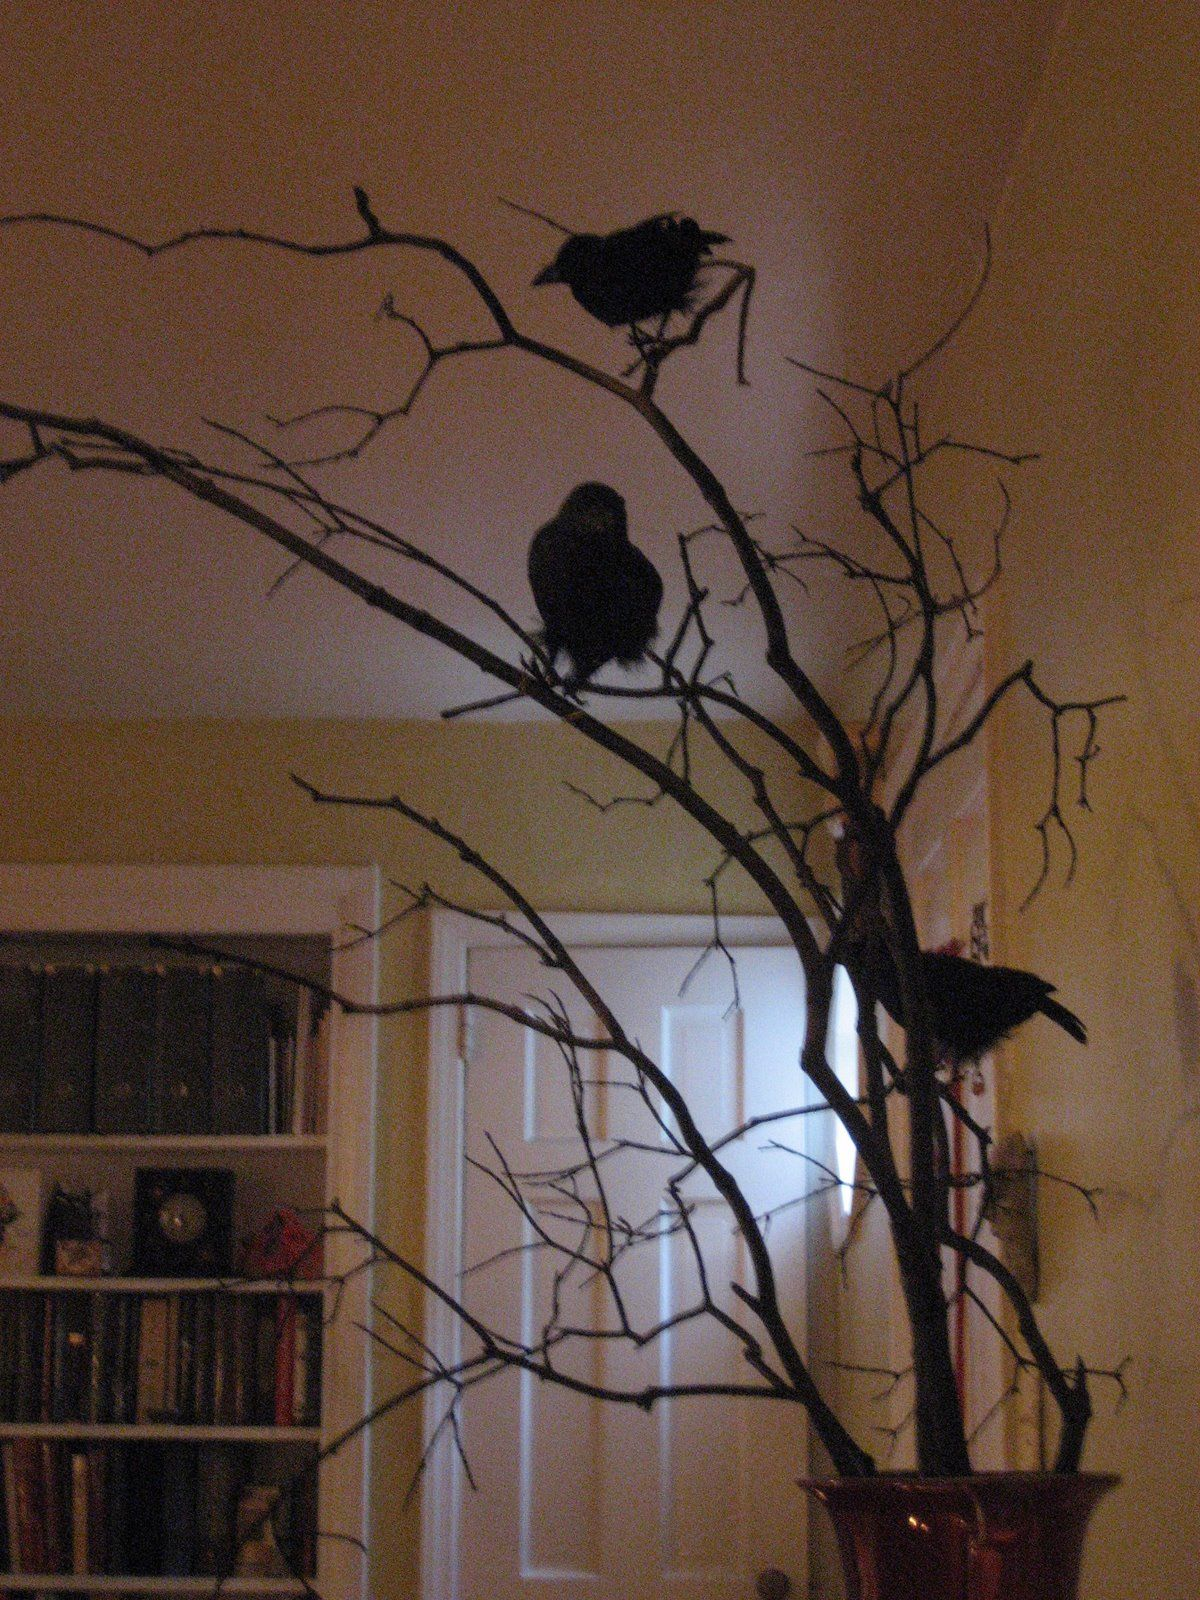 spray paint branches black and find some fake ravens black birds - Raven Halloween Decorations